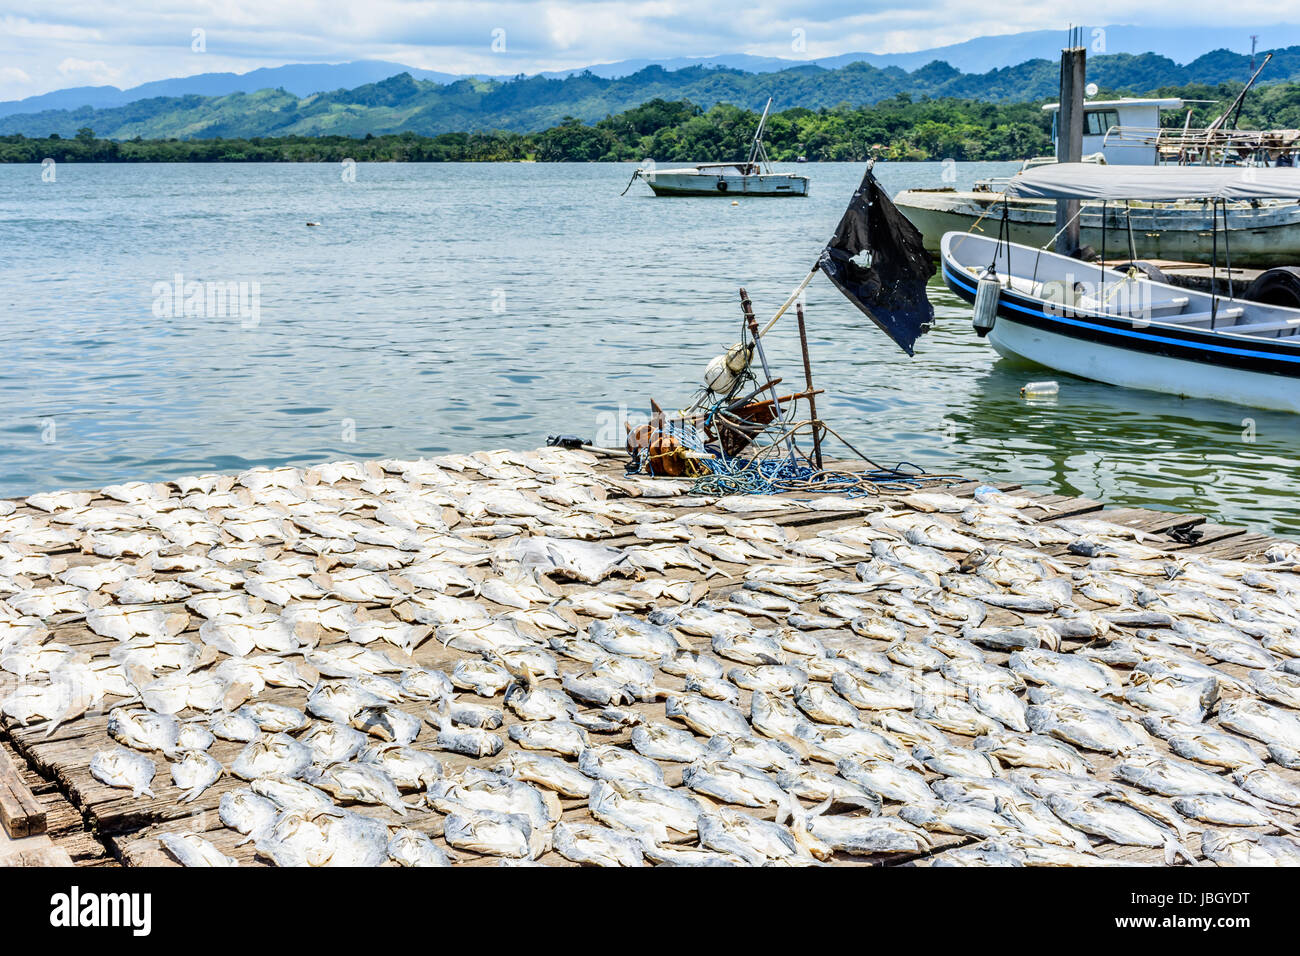 Fishing boats at anchor near fish drying in sun by river estuary of Rio Dulce in Caribbean town of Livingston, Guatemala - Stock Image